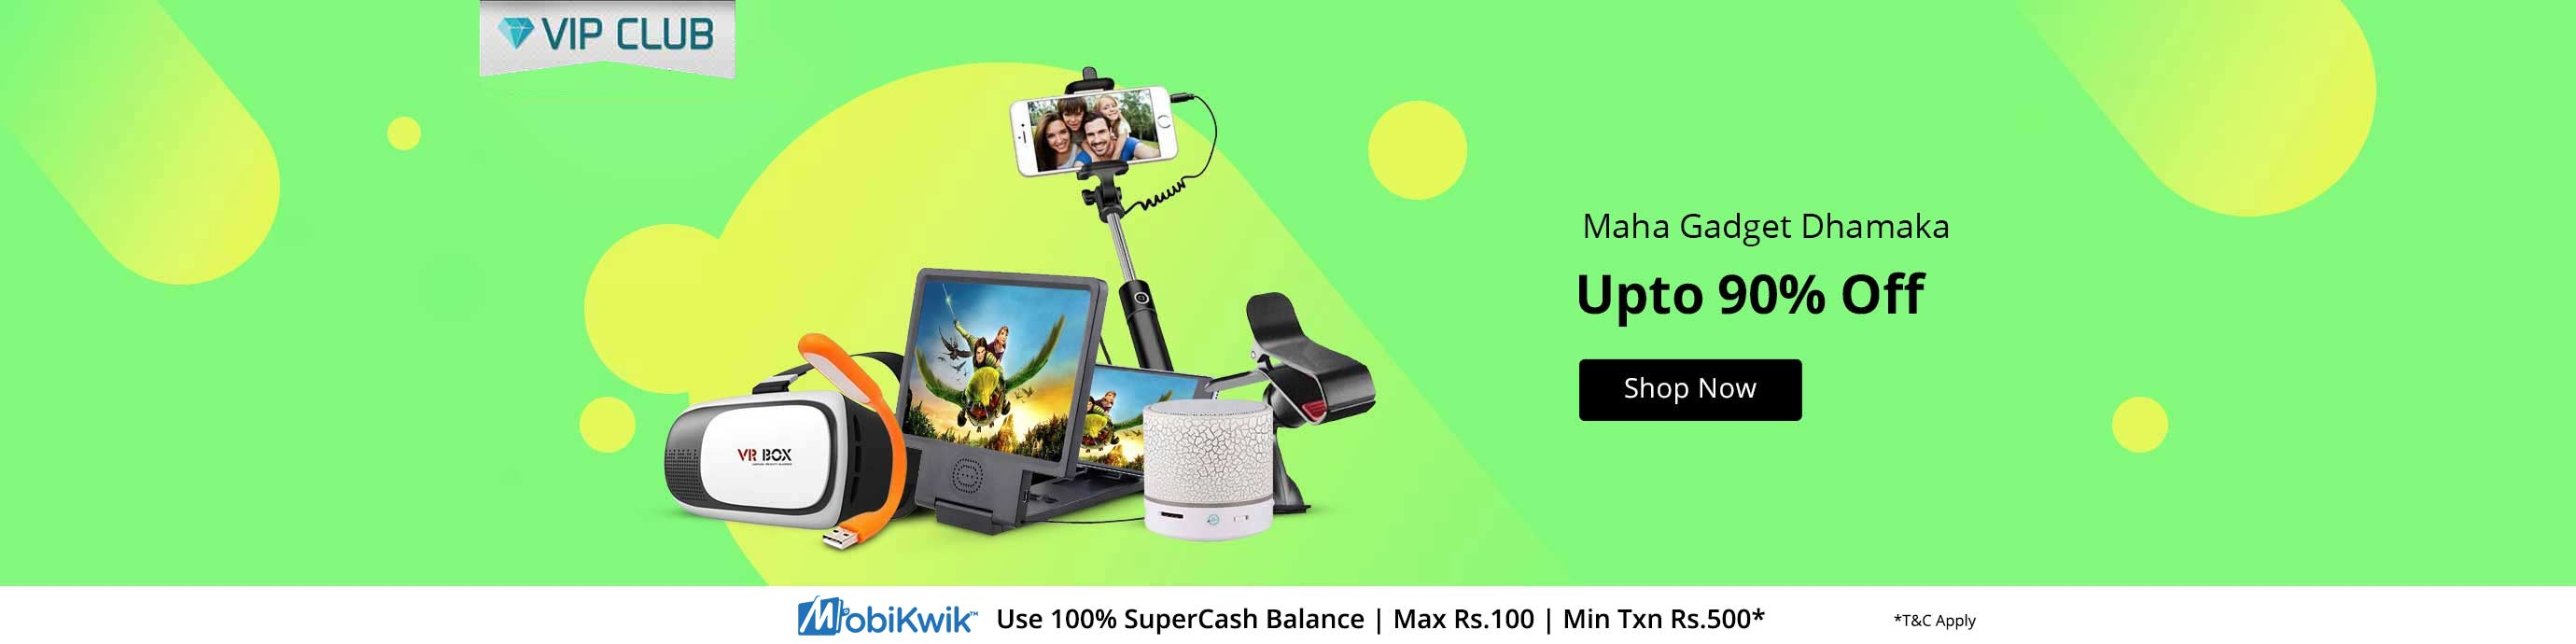 Wired|Upto 90% Off